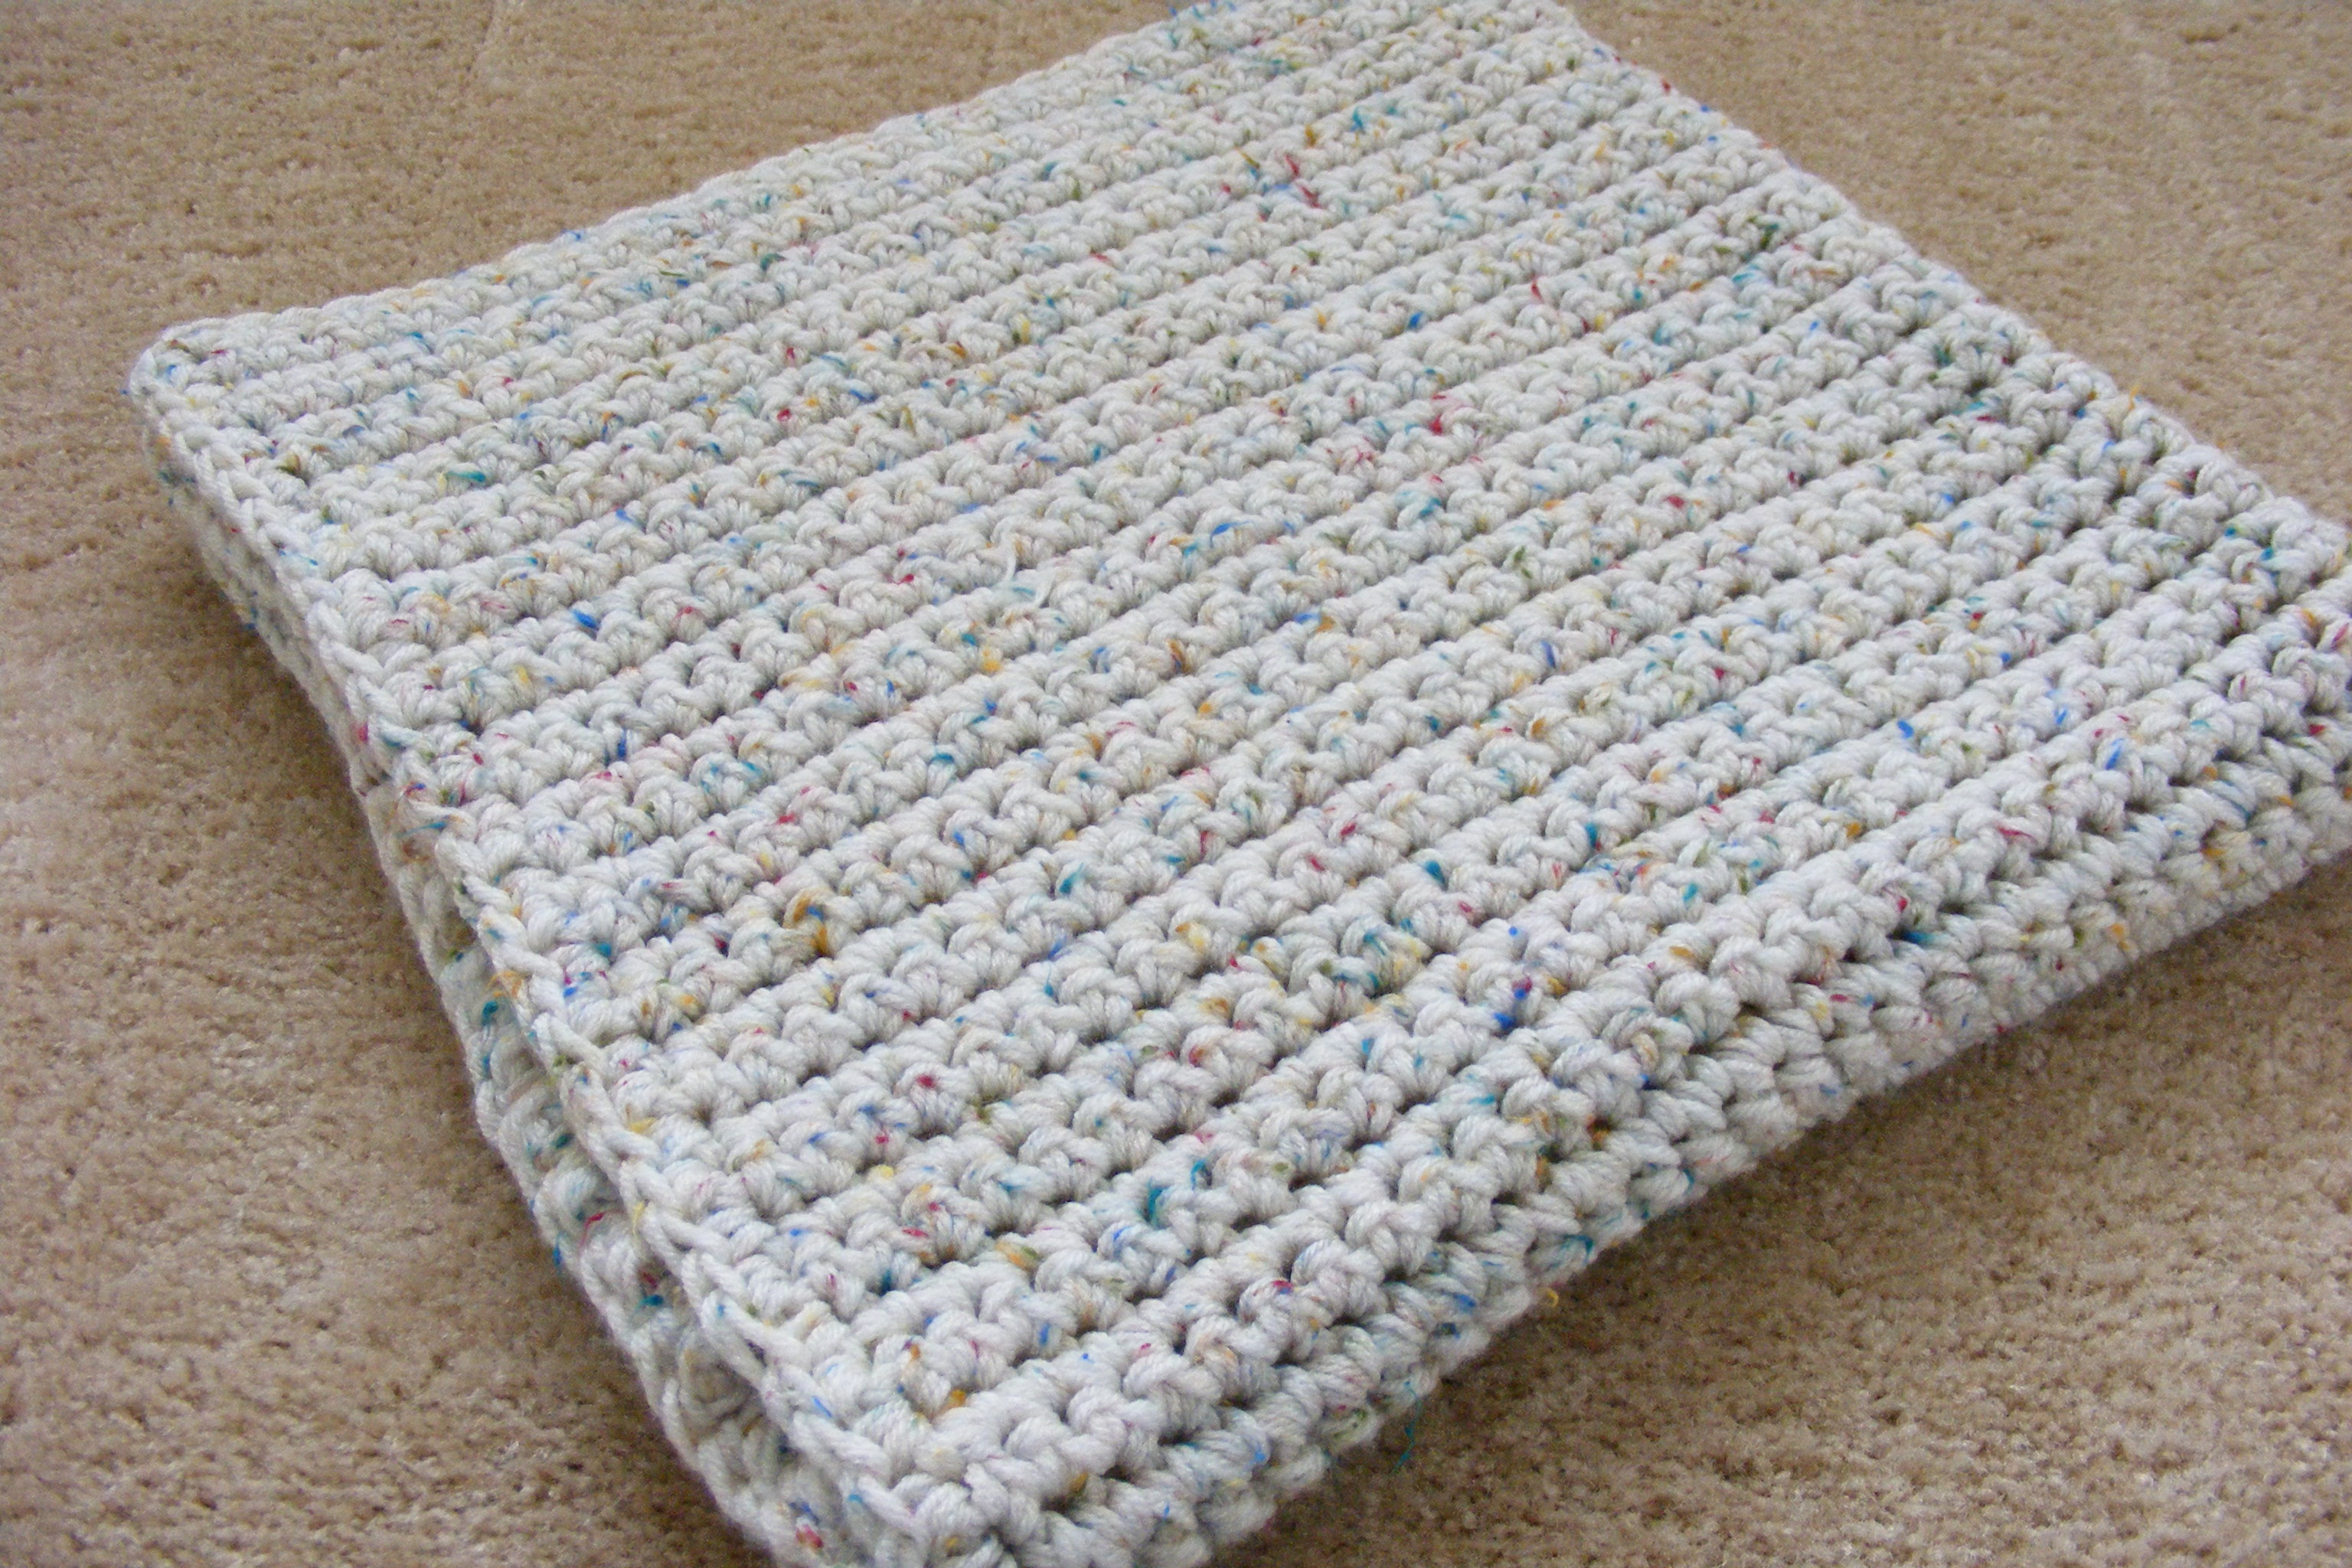 Free Crochet Baby Blanket Patterns Simple Baby Blankets : Single Crochet Baby Blanket GretchKals Yarny Adventures